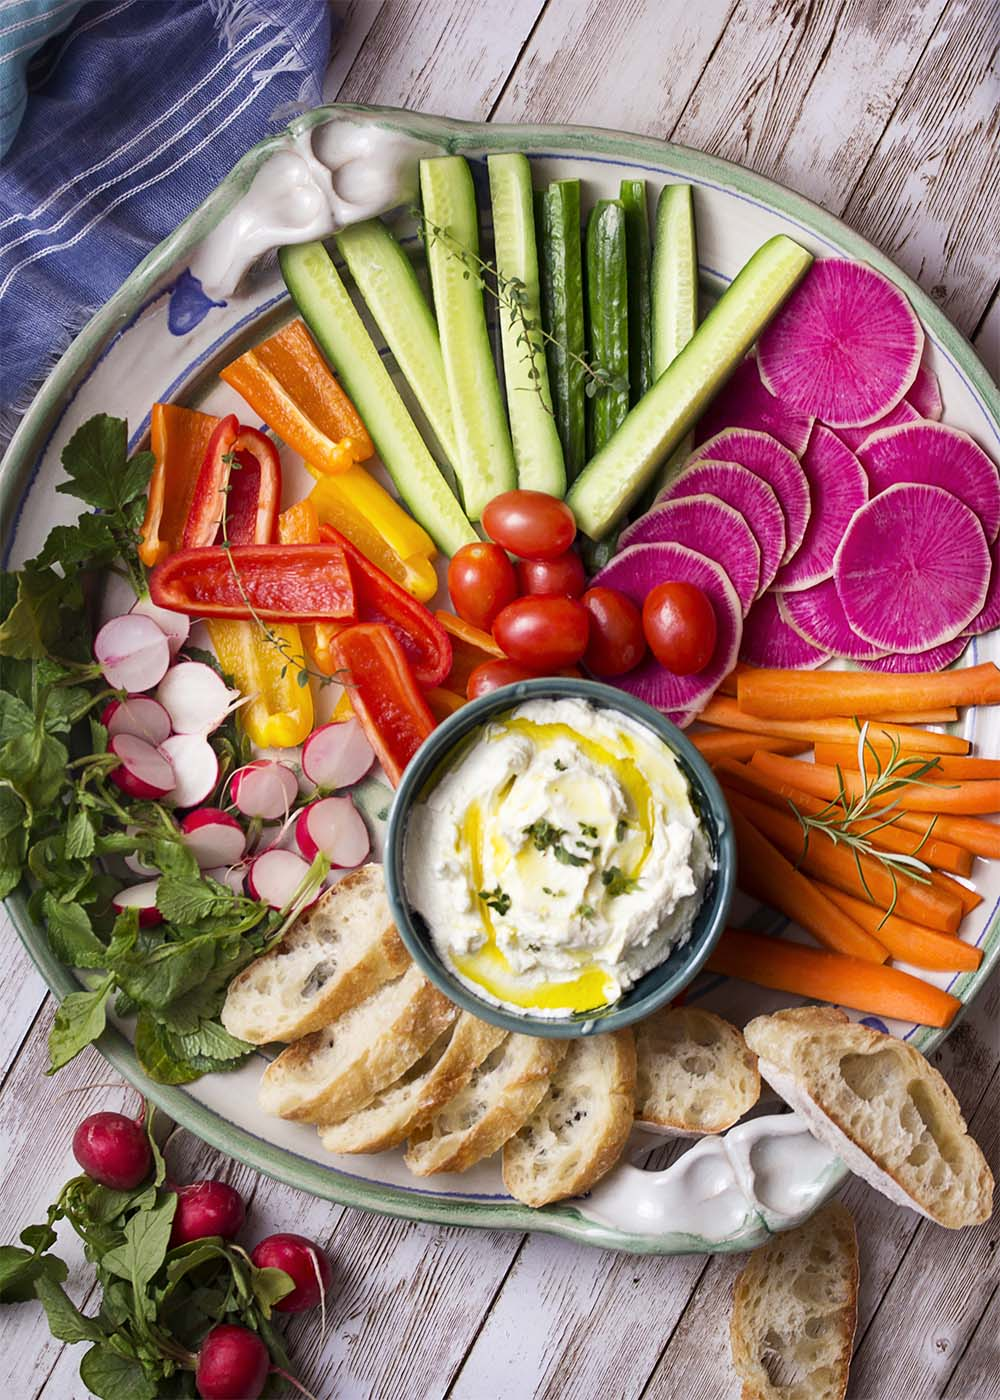 Top view of a table with a large platter filled with colorful cut vegetables and sliced bread. A bowl of whipped goat cheese in the platter.